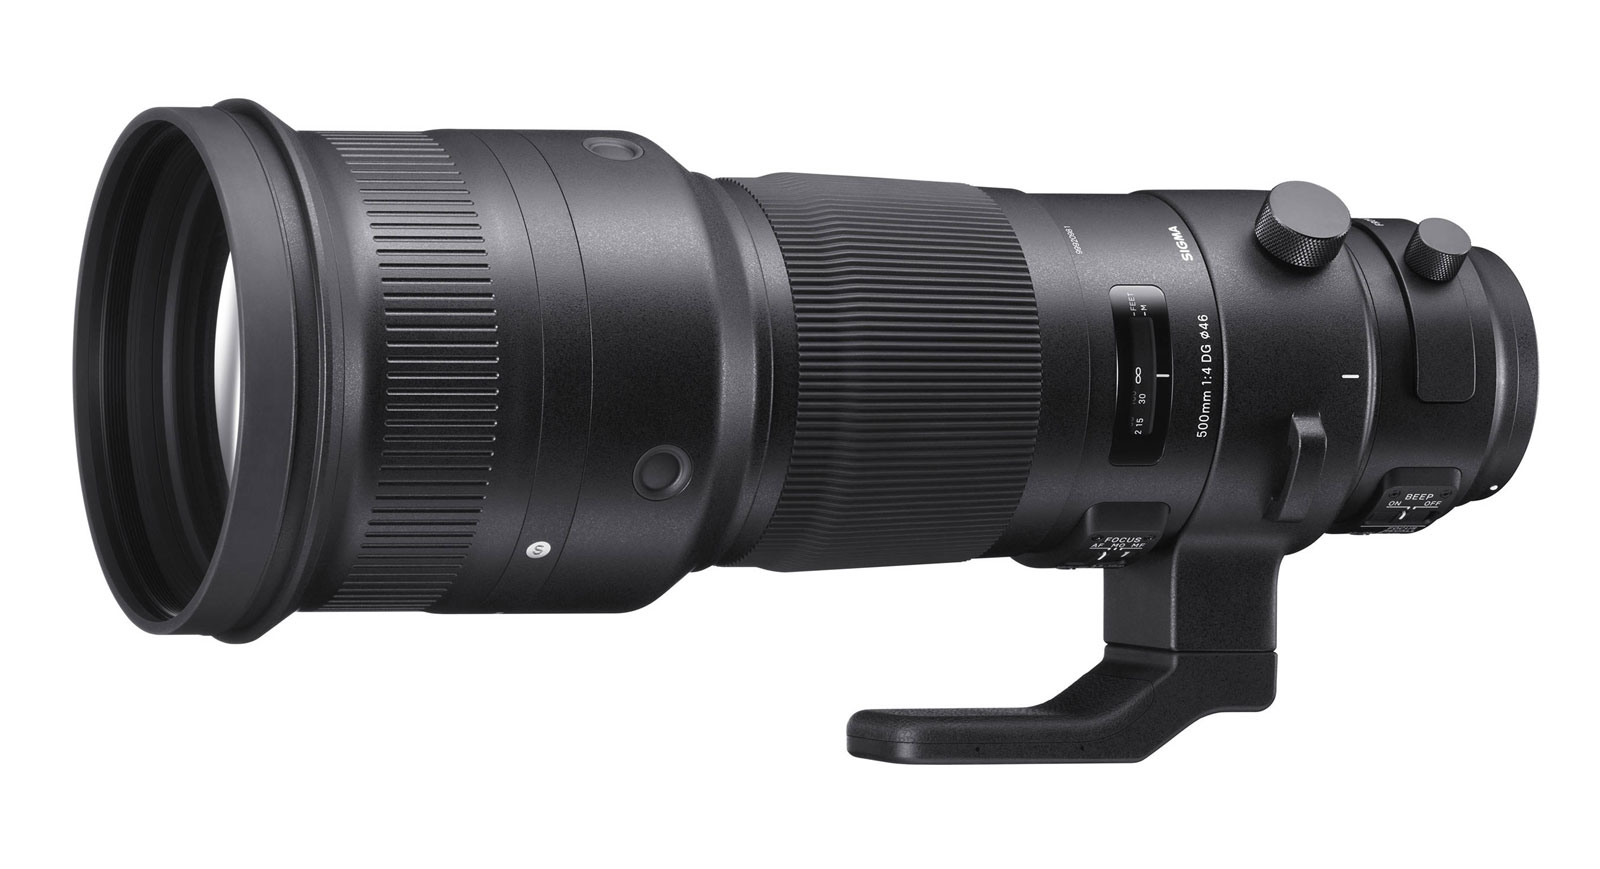 sigma 500mm f/4 lens review